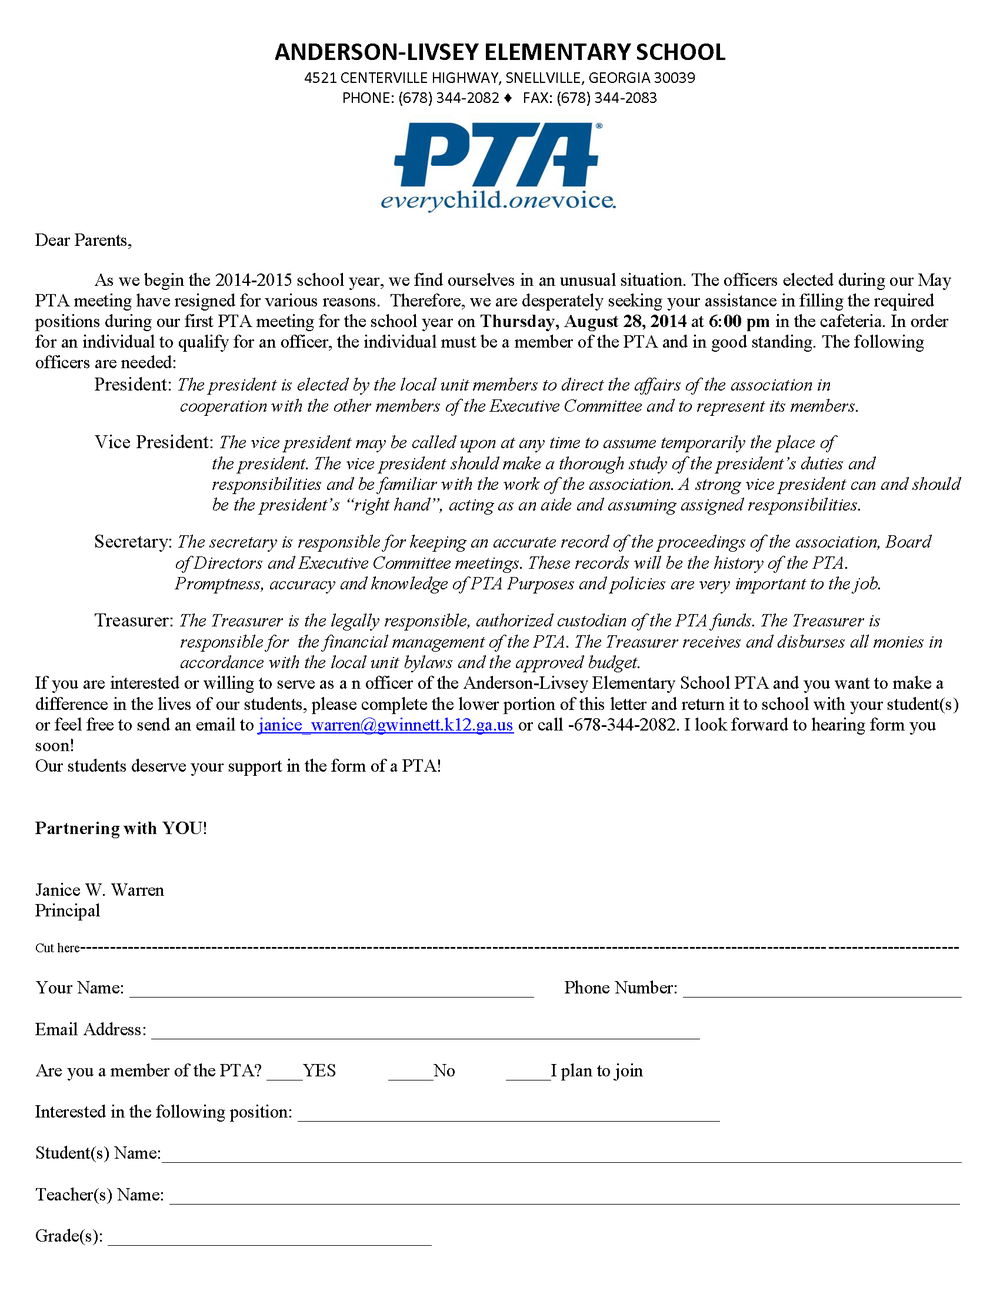 Parents, we need your help with PTA (click the image to read and download)